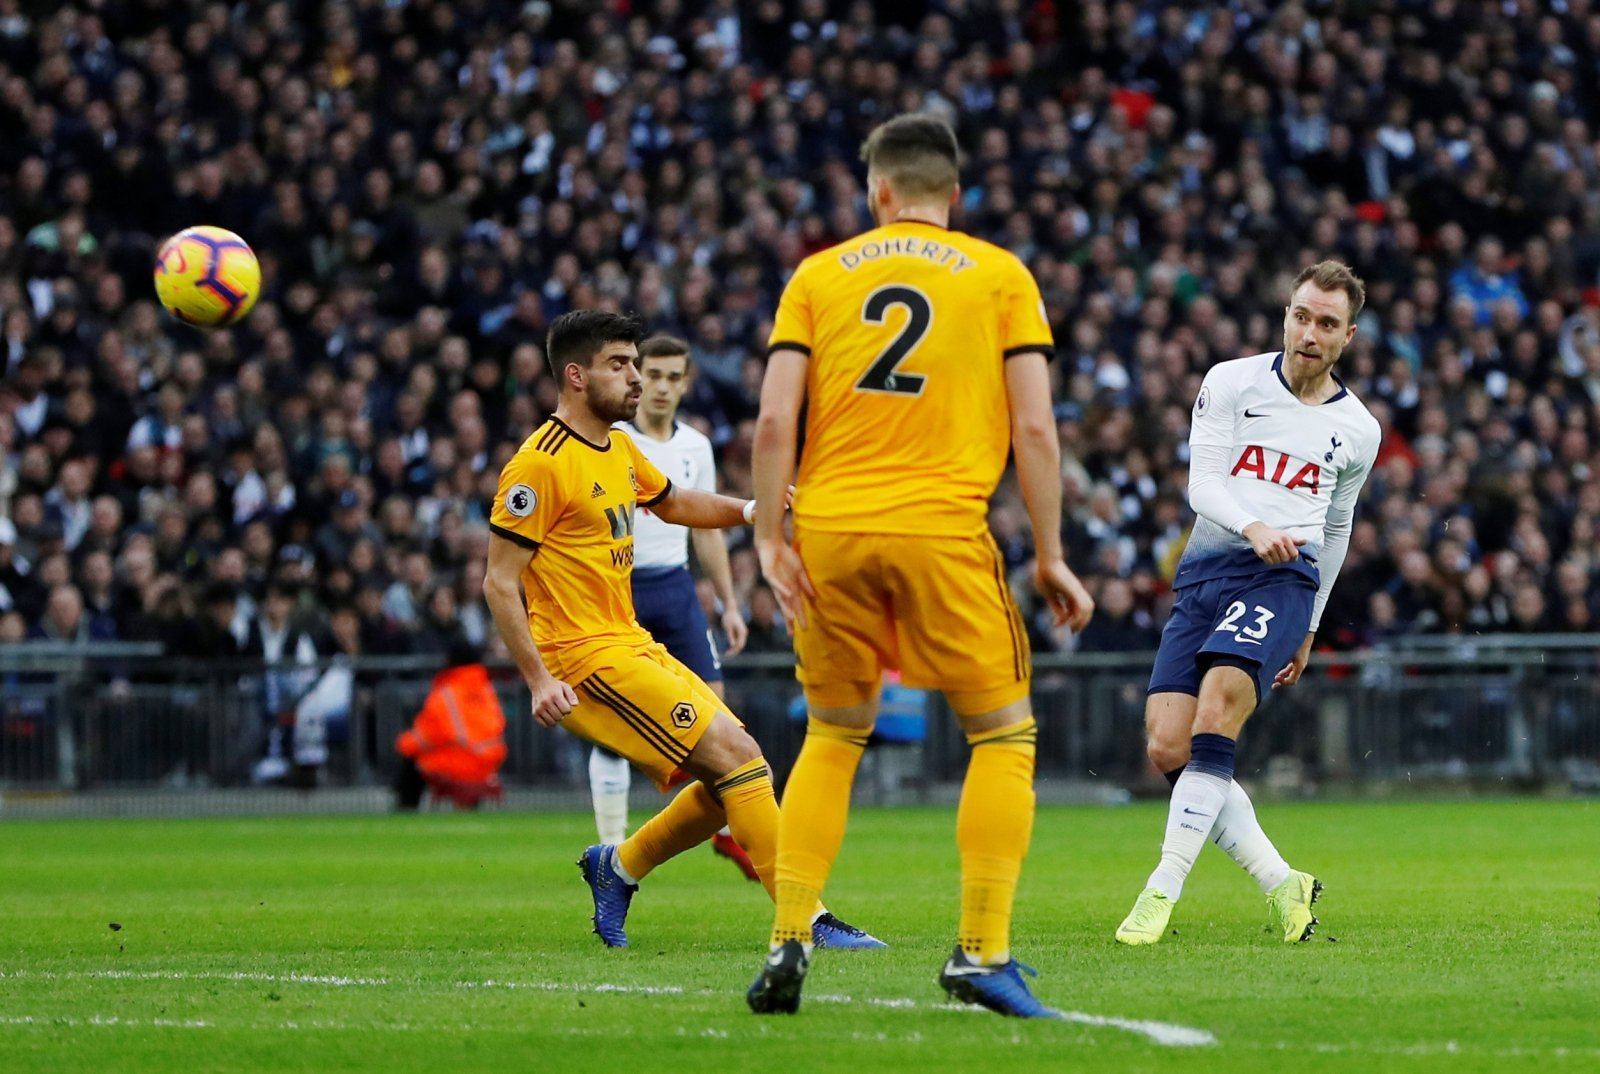 Opinion: A part-exchange swap deal with Real Madrid for Christian Eriksen could be Daniel Levy's ideal solution to huge conundrum